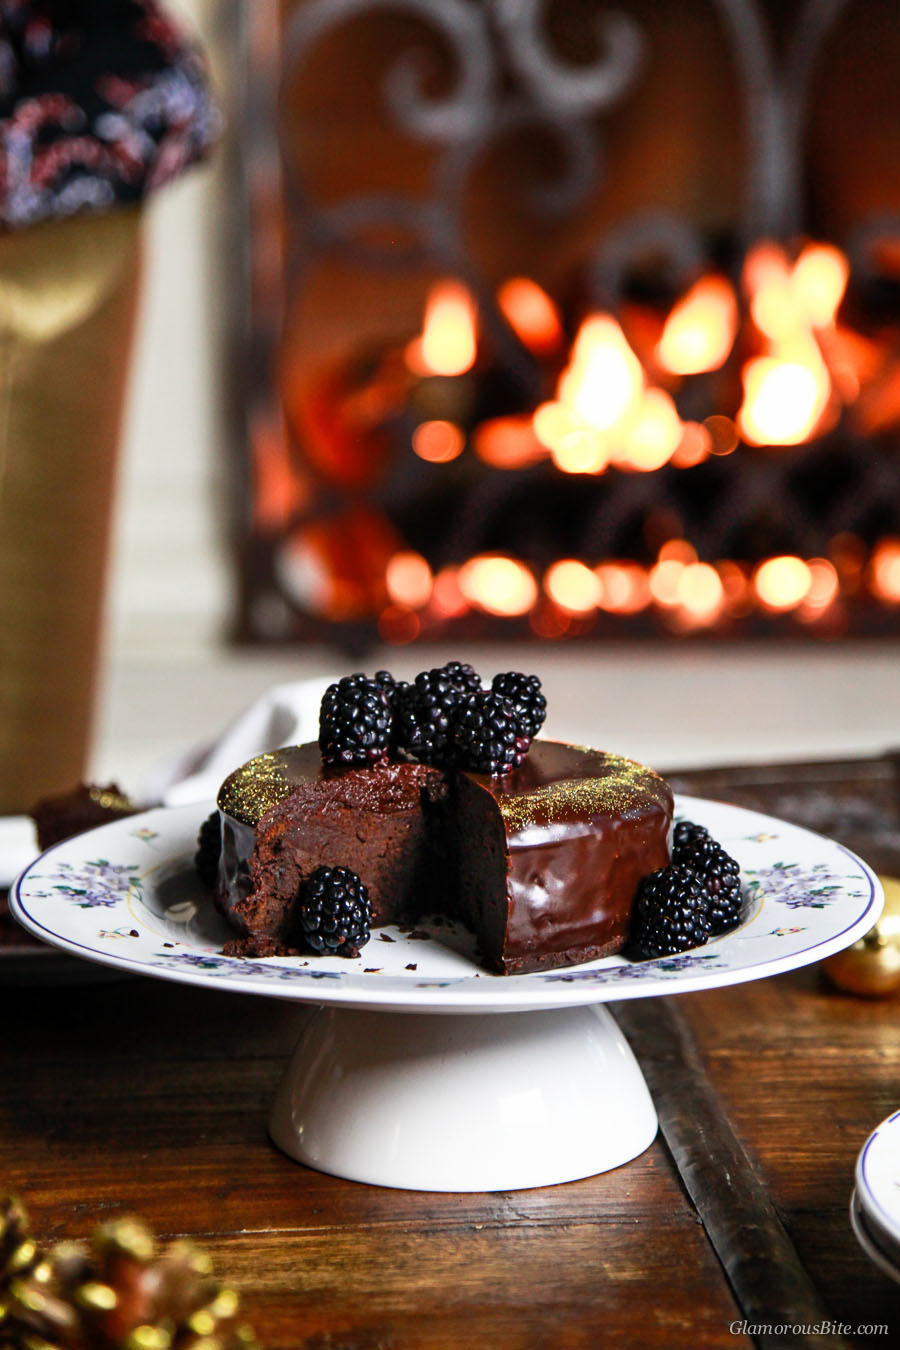 Fergalicious Chocolate Cake with Blackberry Coulis Recipe